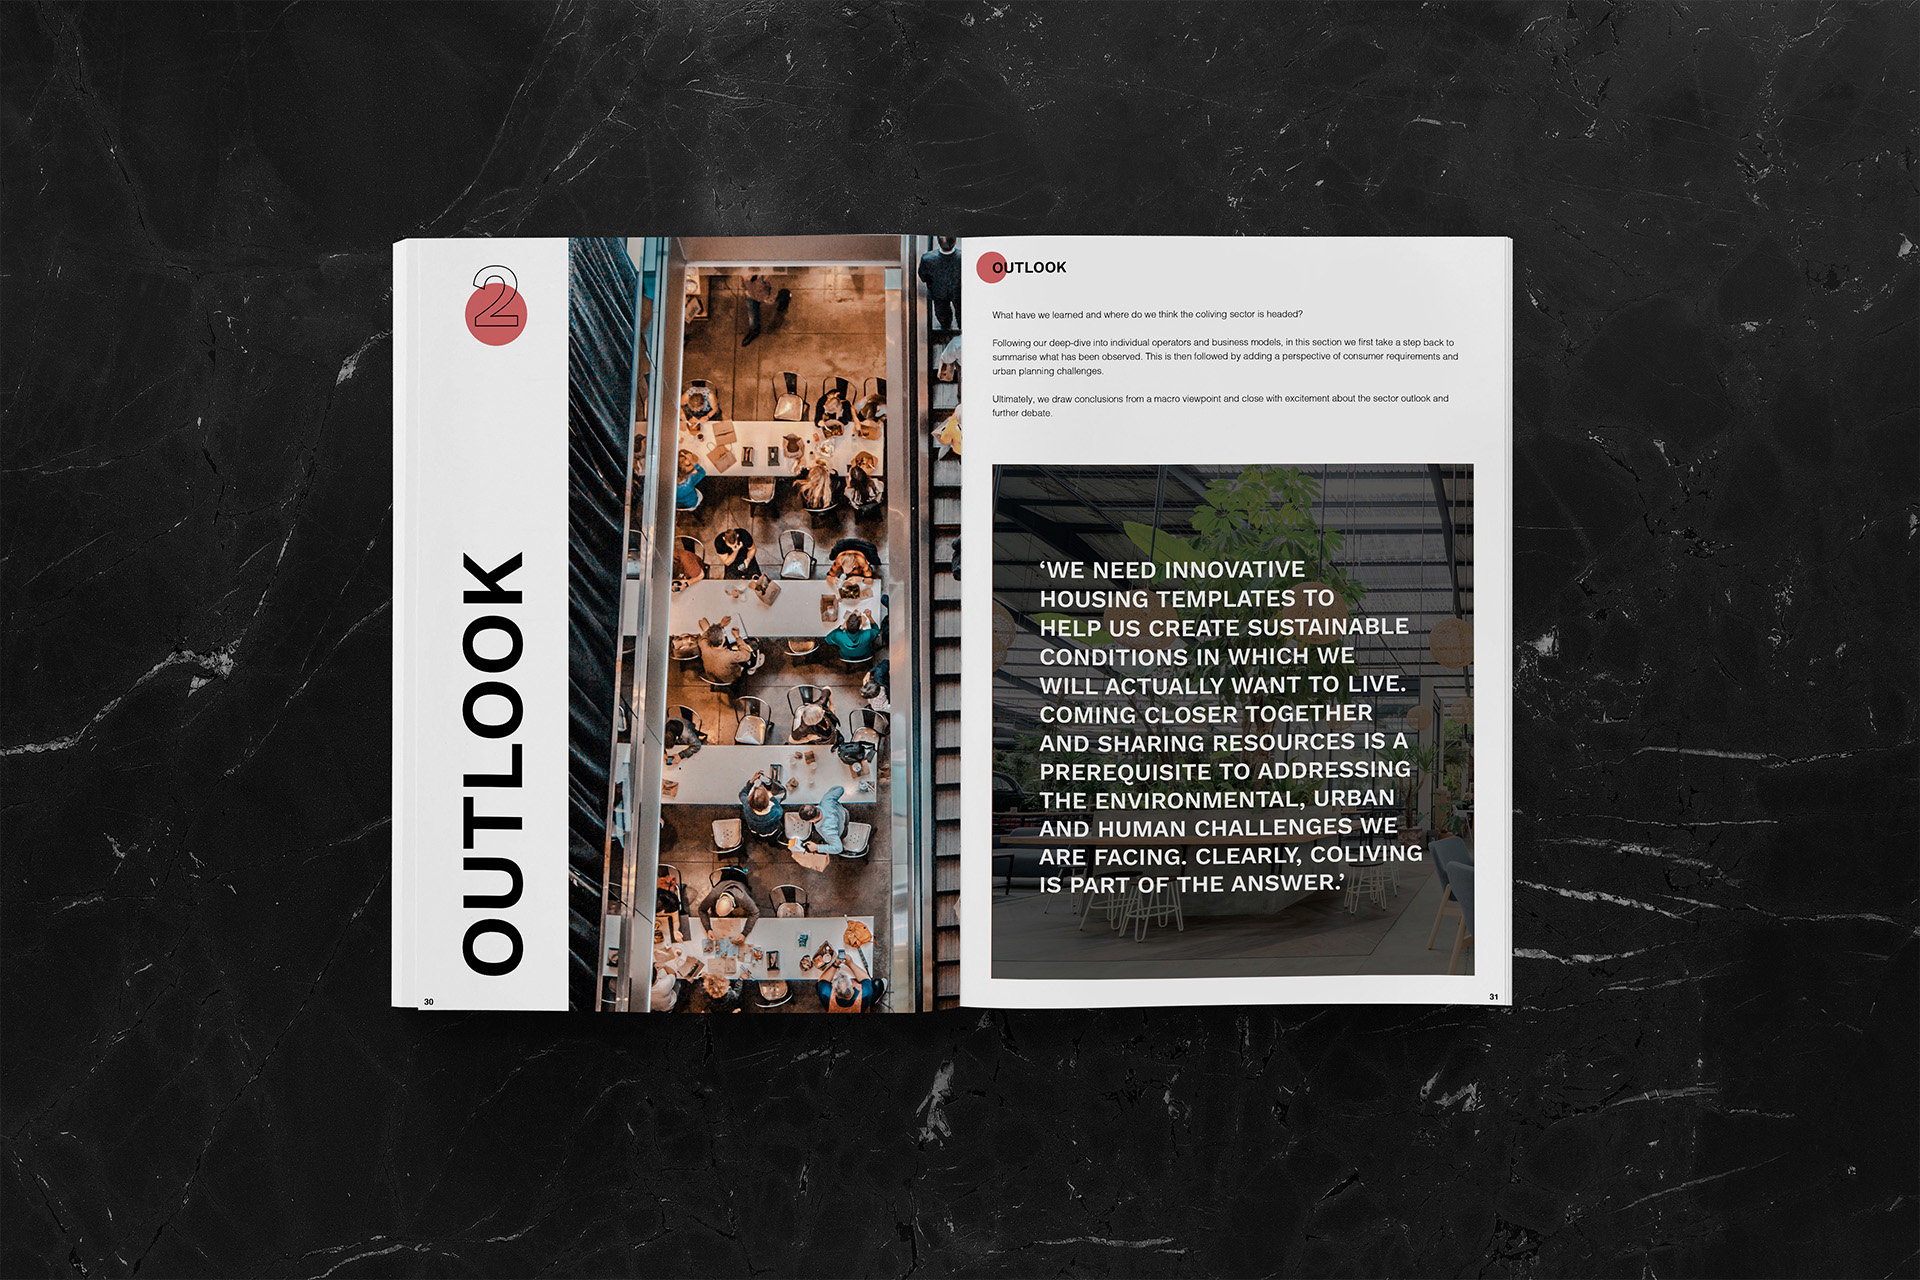 Coliving Insights Publication Interior page mockup of Outlook by SPX Agency